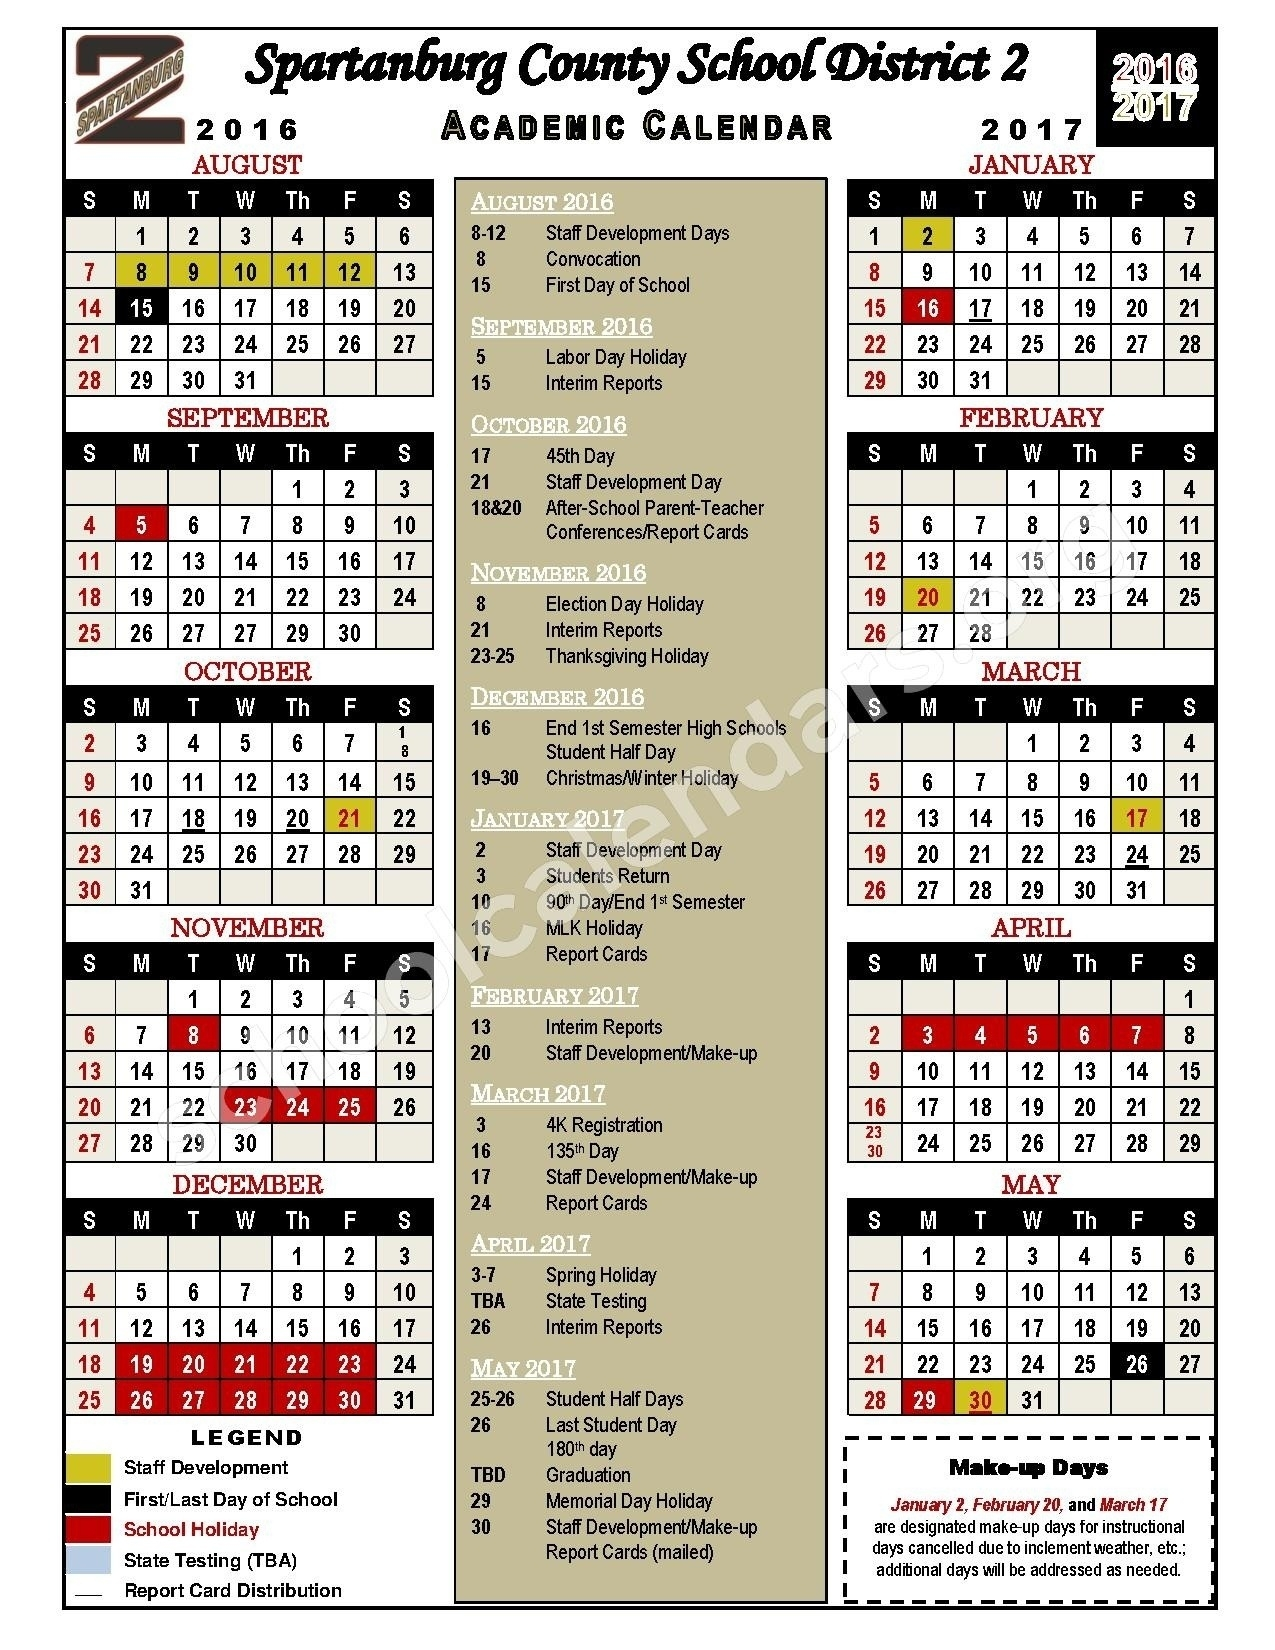 Incredible District 2 School Calendar • Printable Blank Calendar_Spartanburg 6 School Calendar